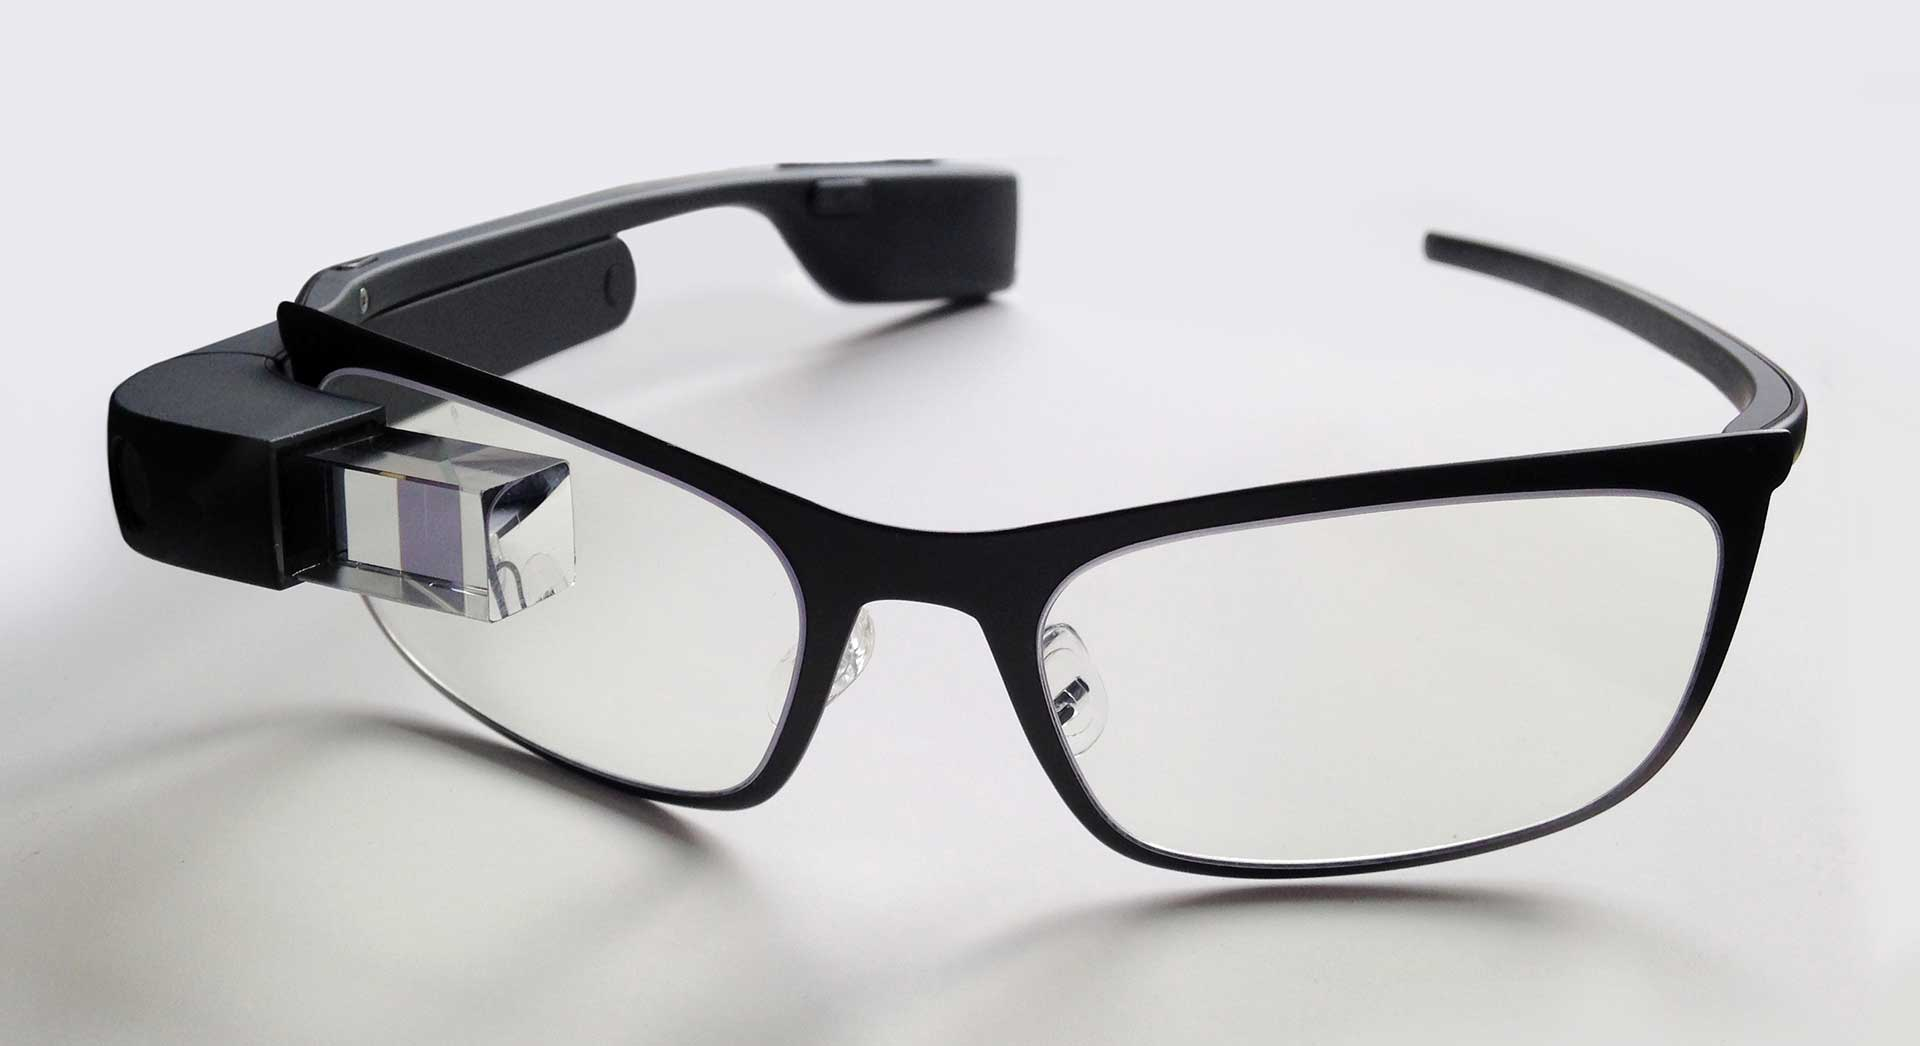 Google Glass 2 Coming Soon Without Screen